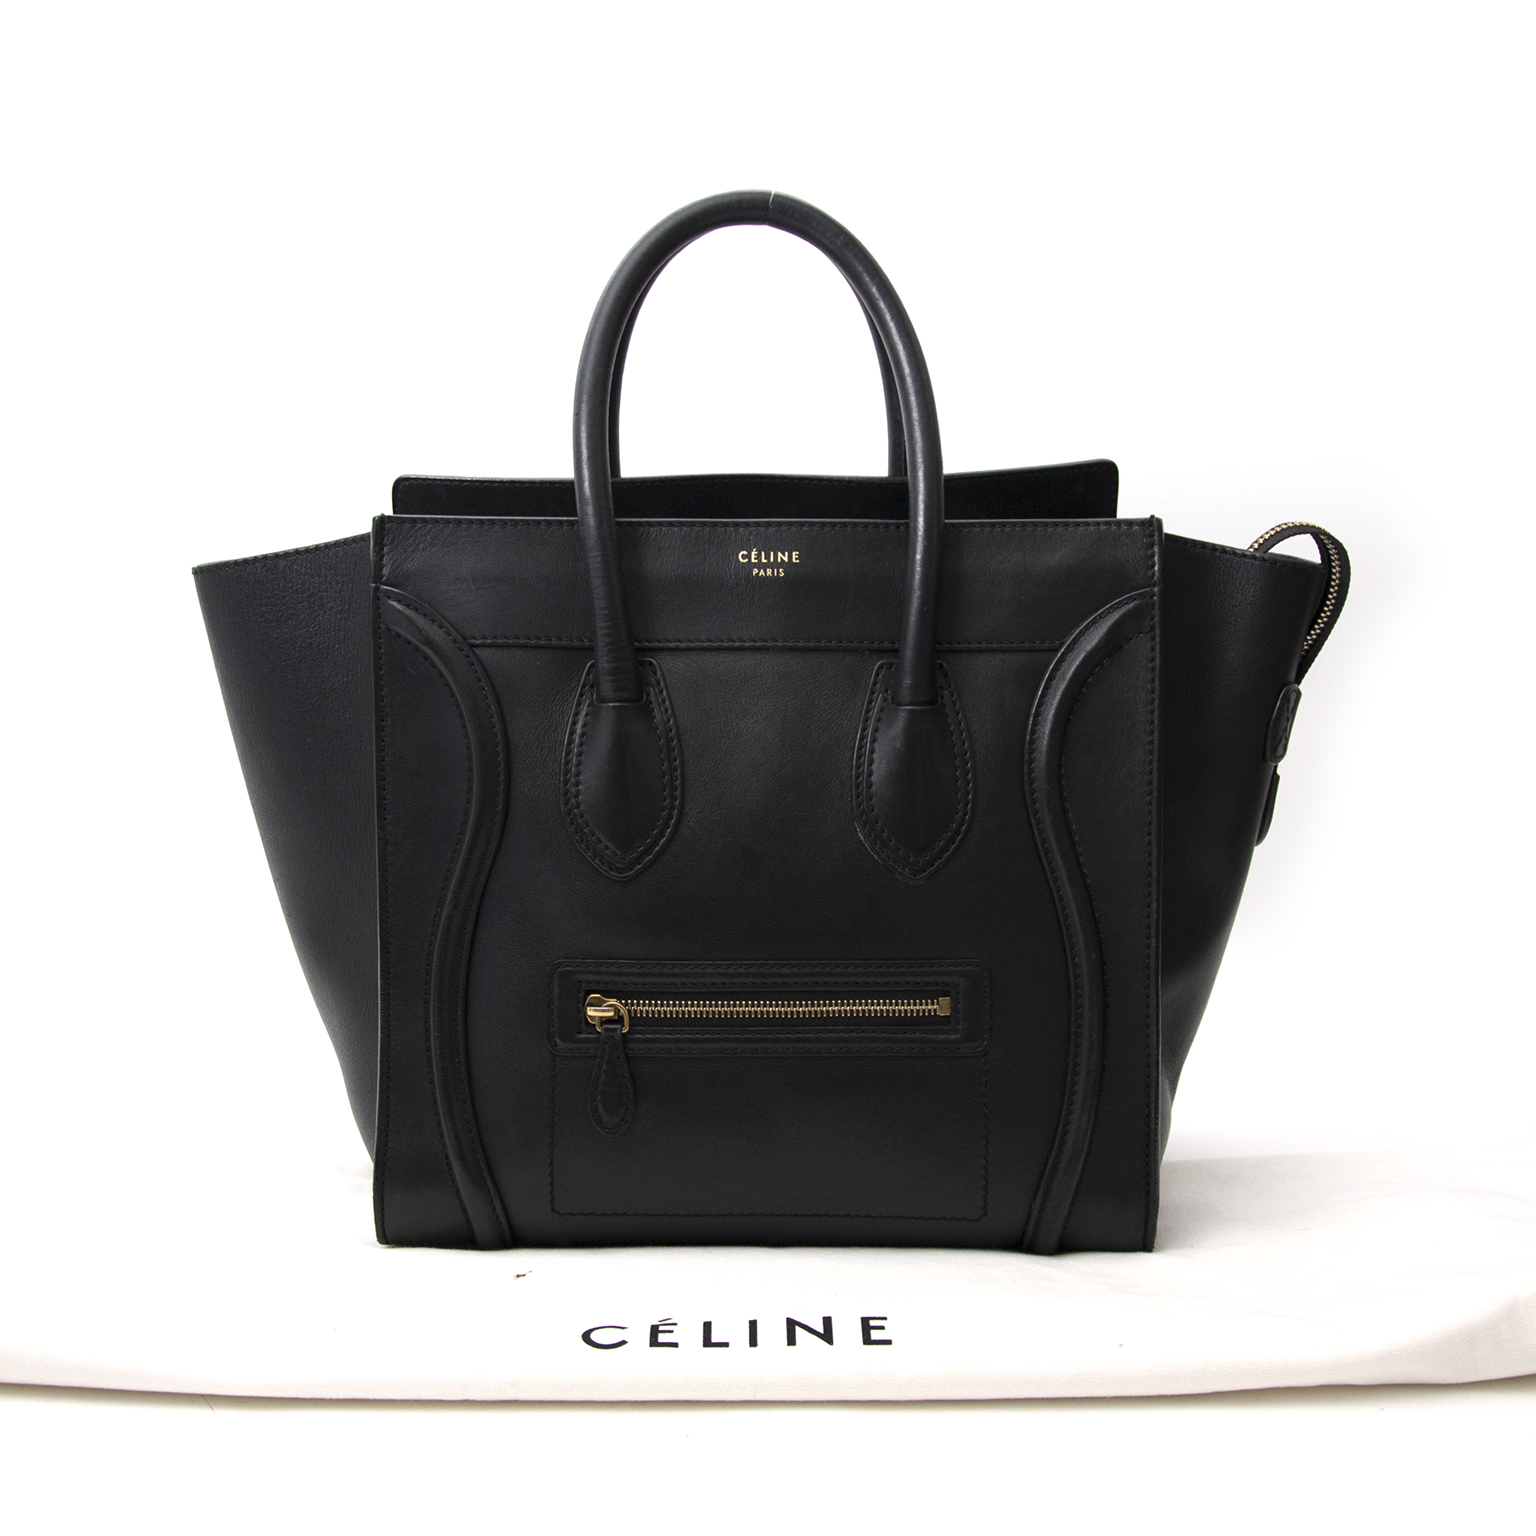 100% authentic Céline Black Luggage Handbag for the best price at Labellov  Looking for your next designer splurge  Get the best deals on Labellov  secondhand ... fed8434618277